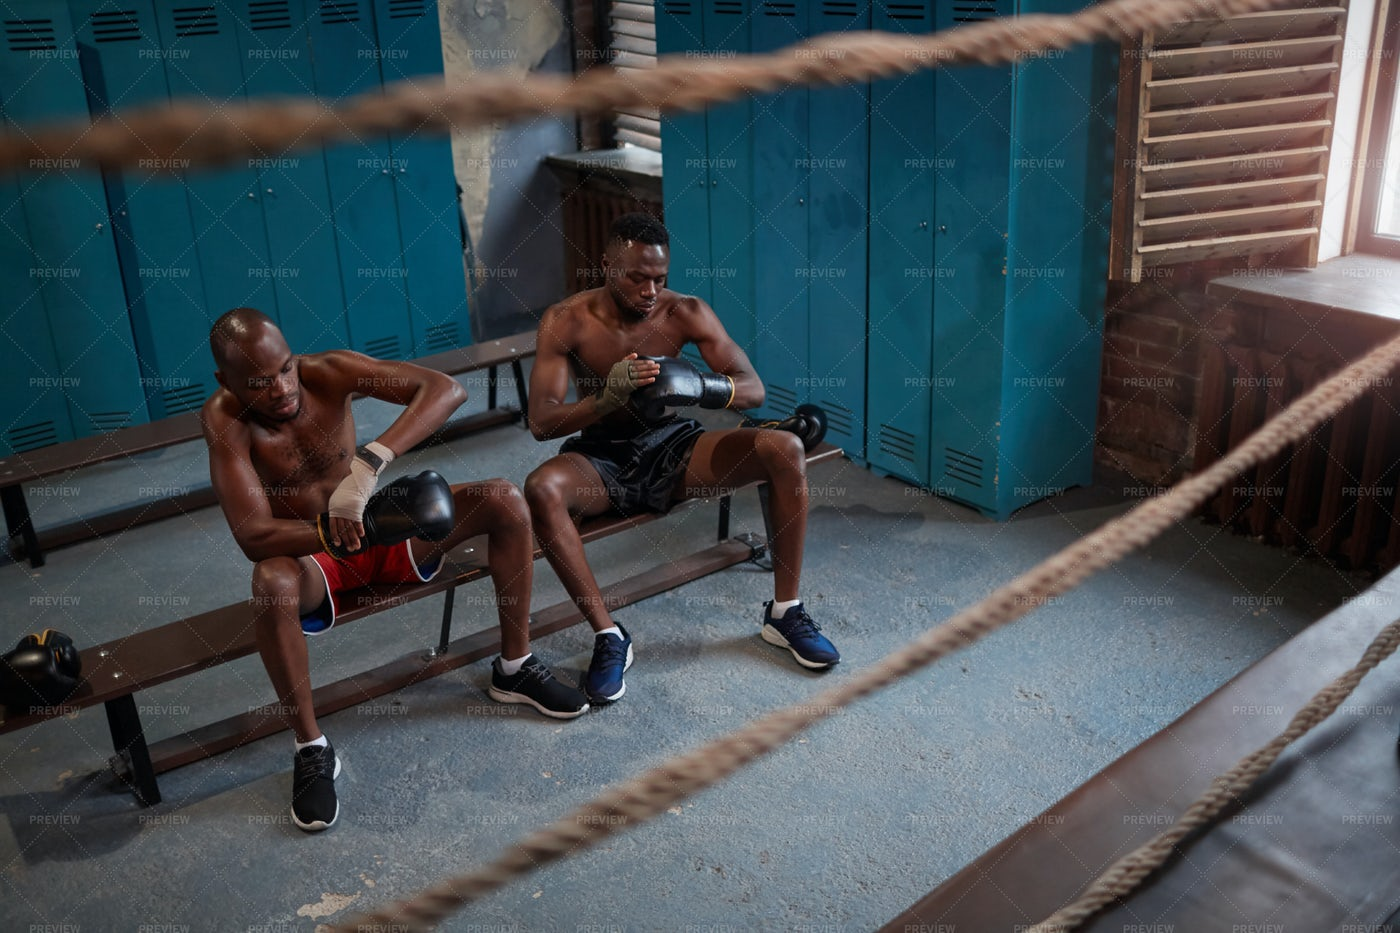 Boxers Putting On Gloves In Gym: Stock Photos